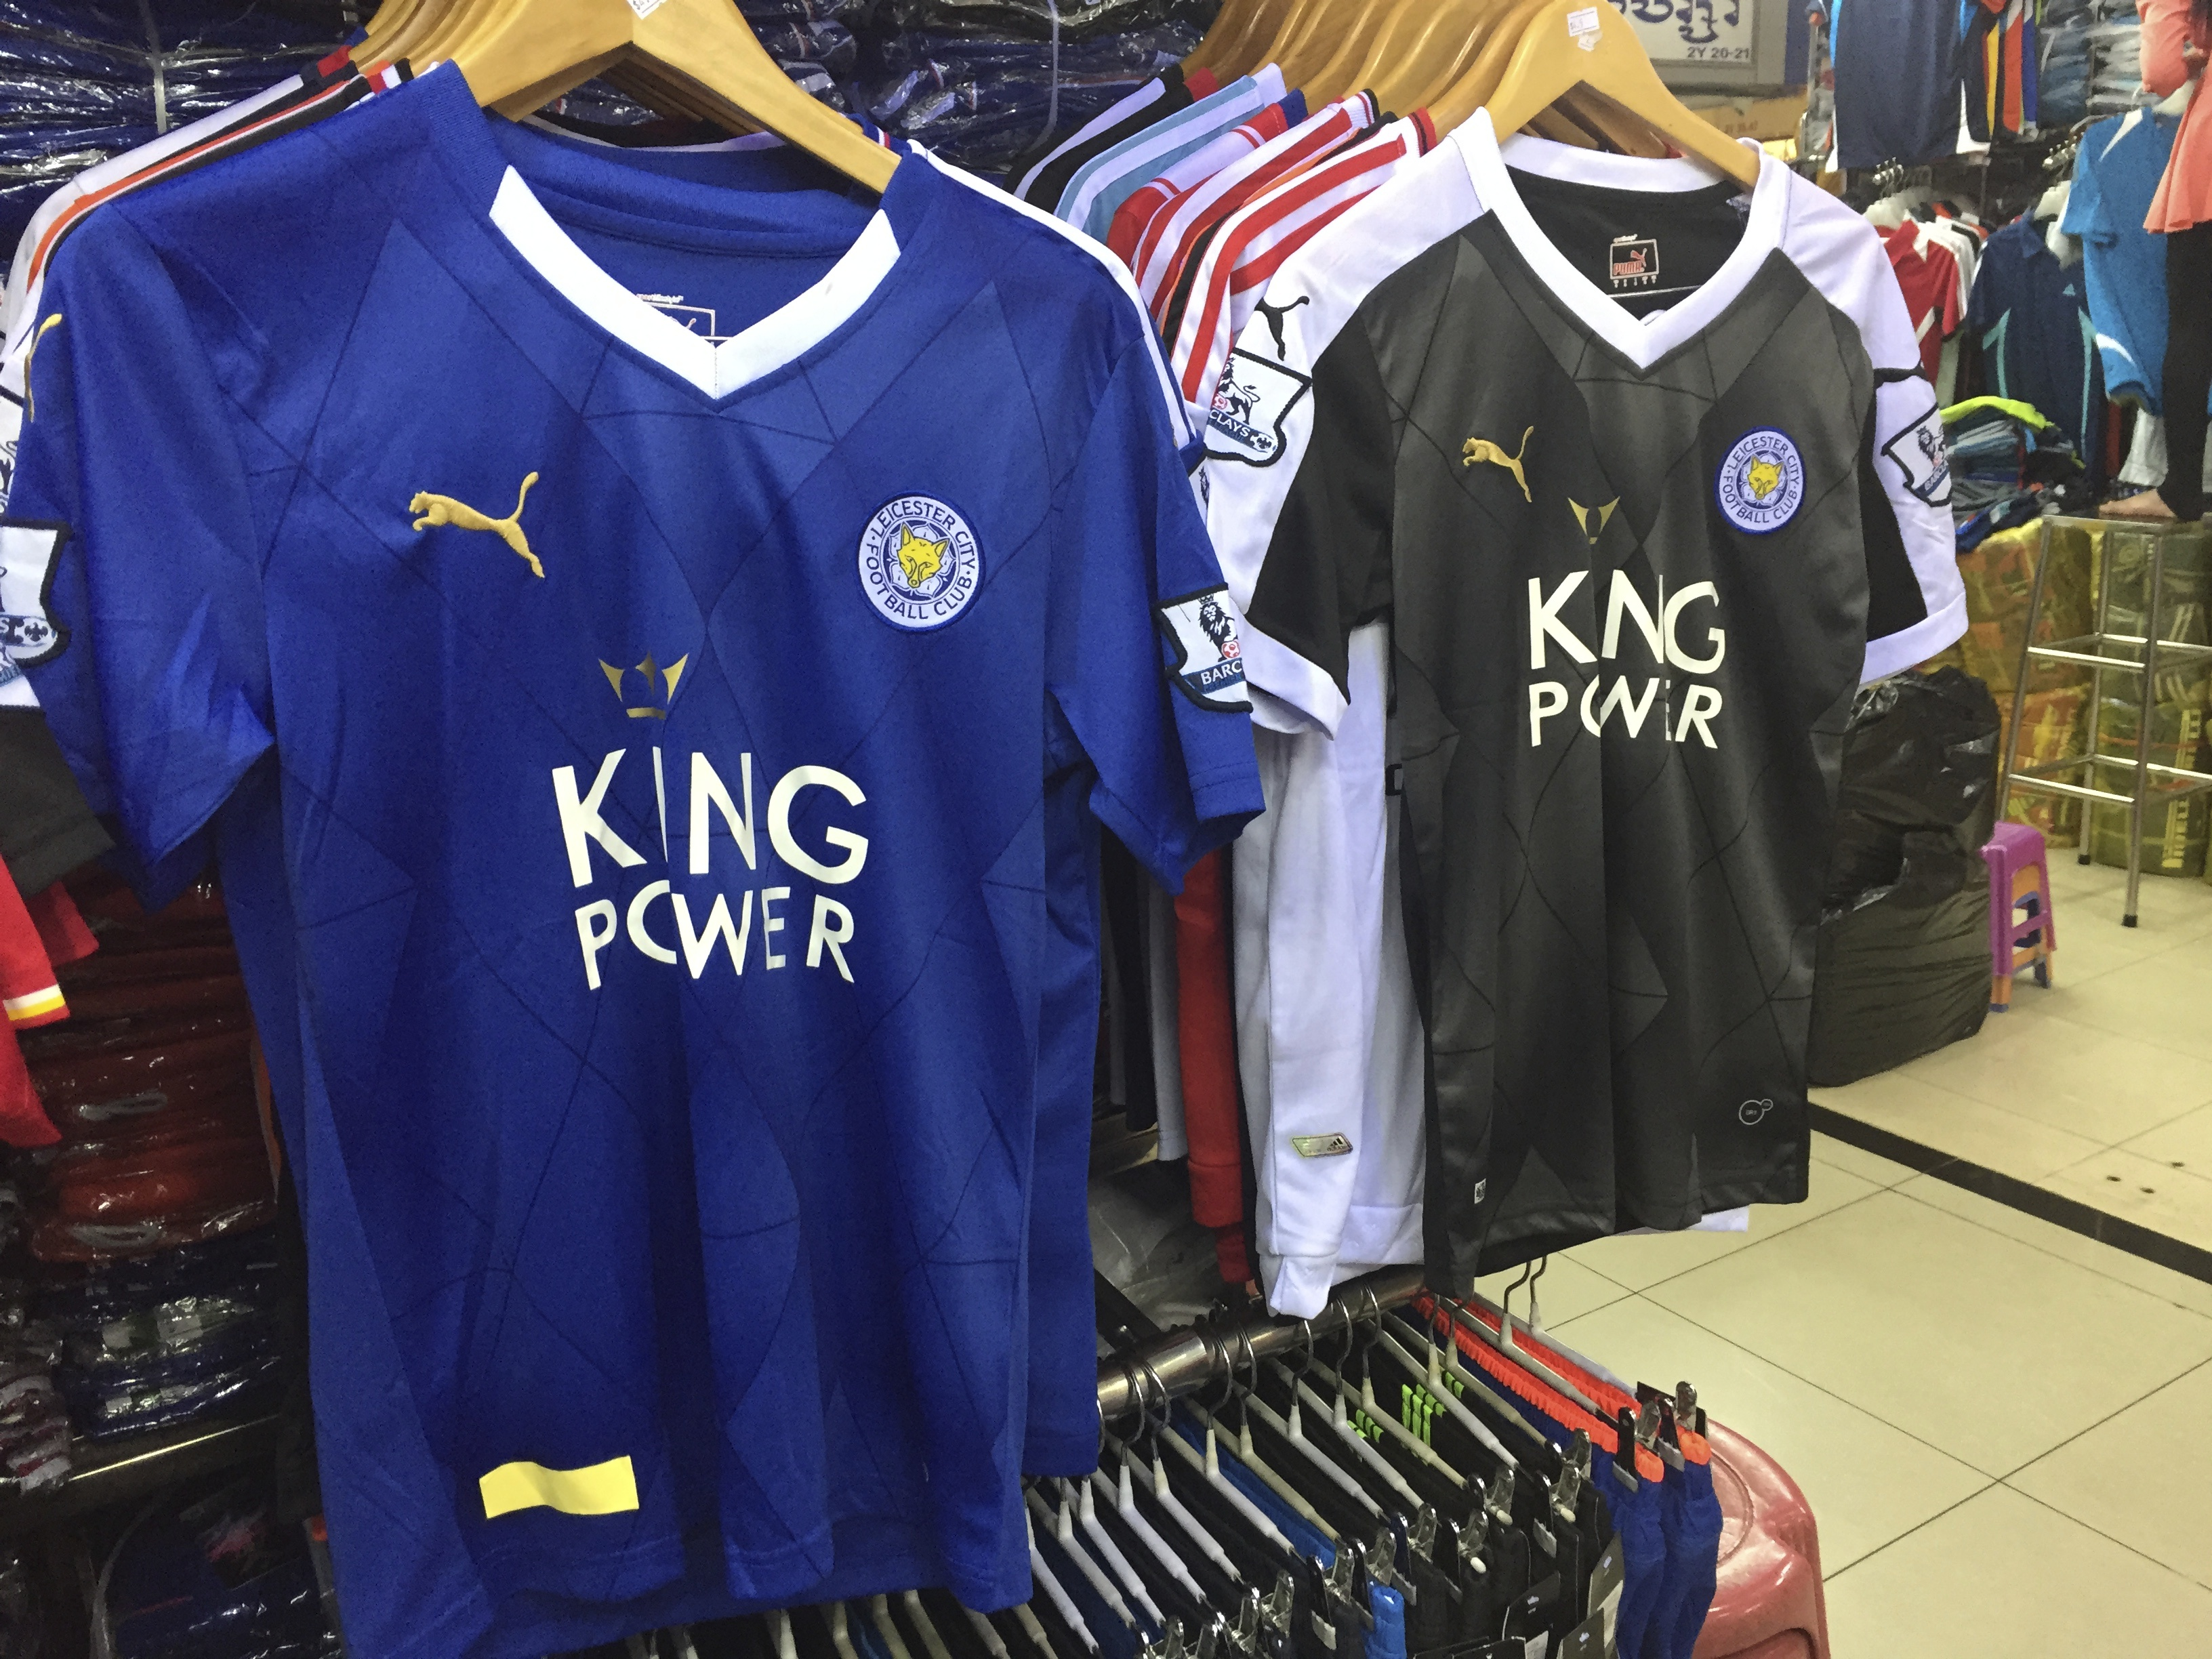 69f5af536 Get Your Kits Out For The Lads – My Leicester City Replica Shirt ...